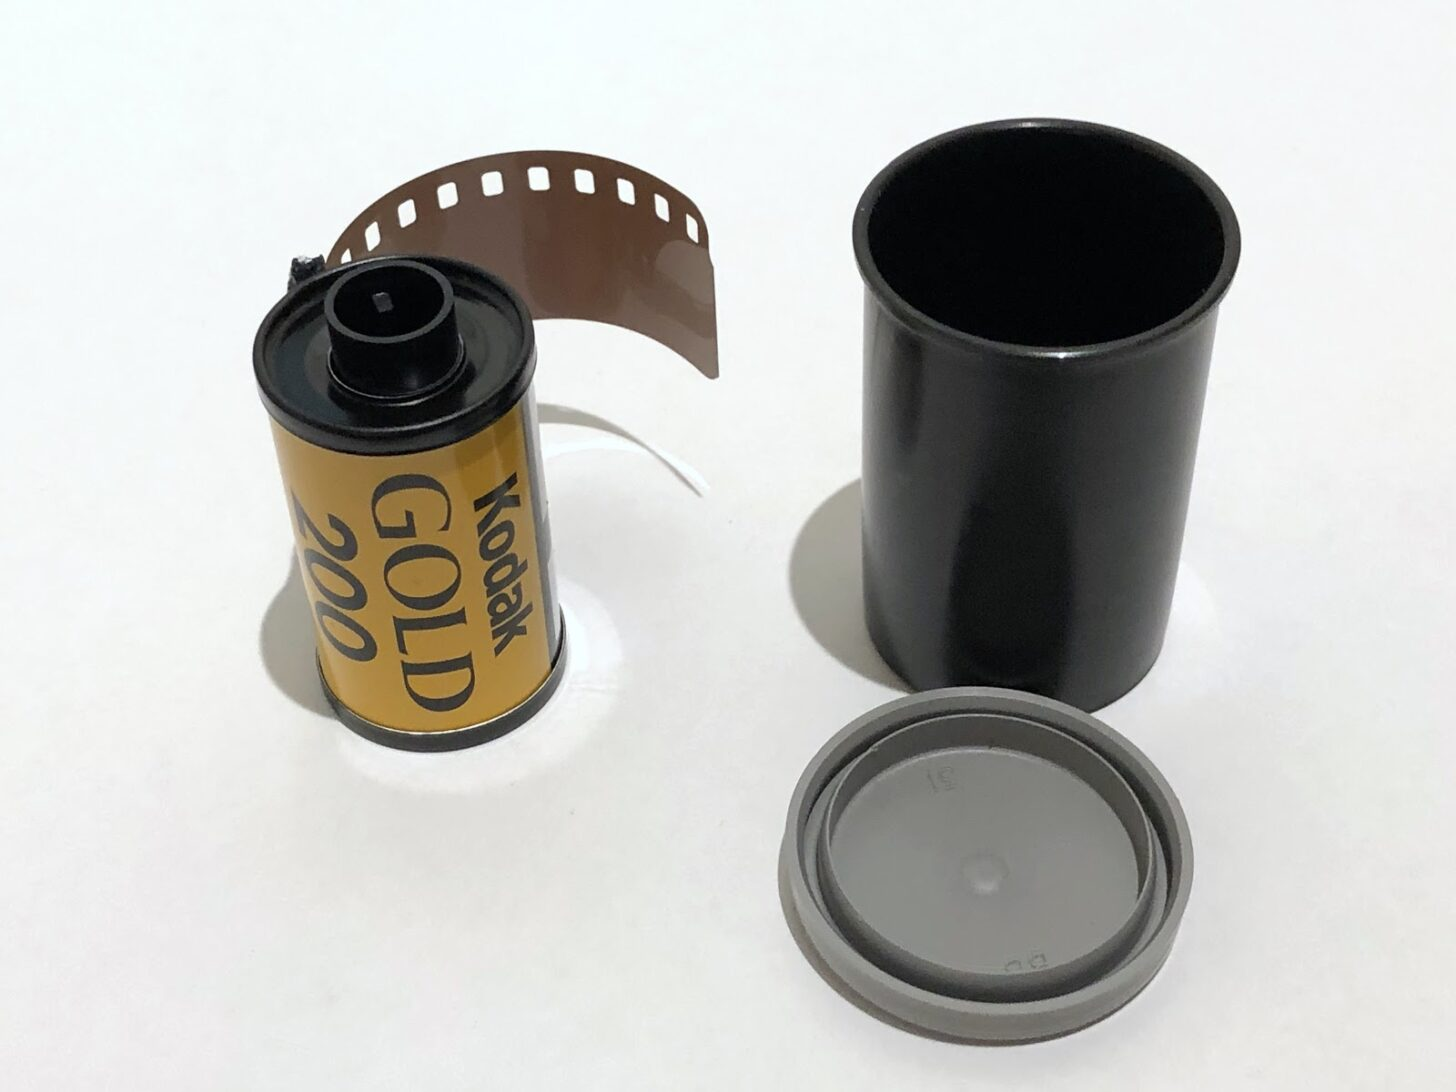 a roll of film and a film canister